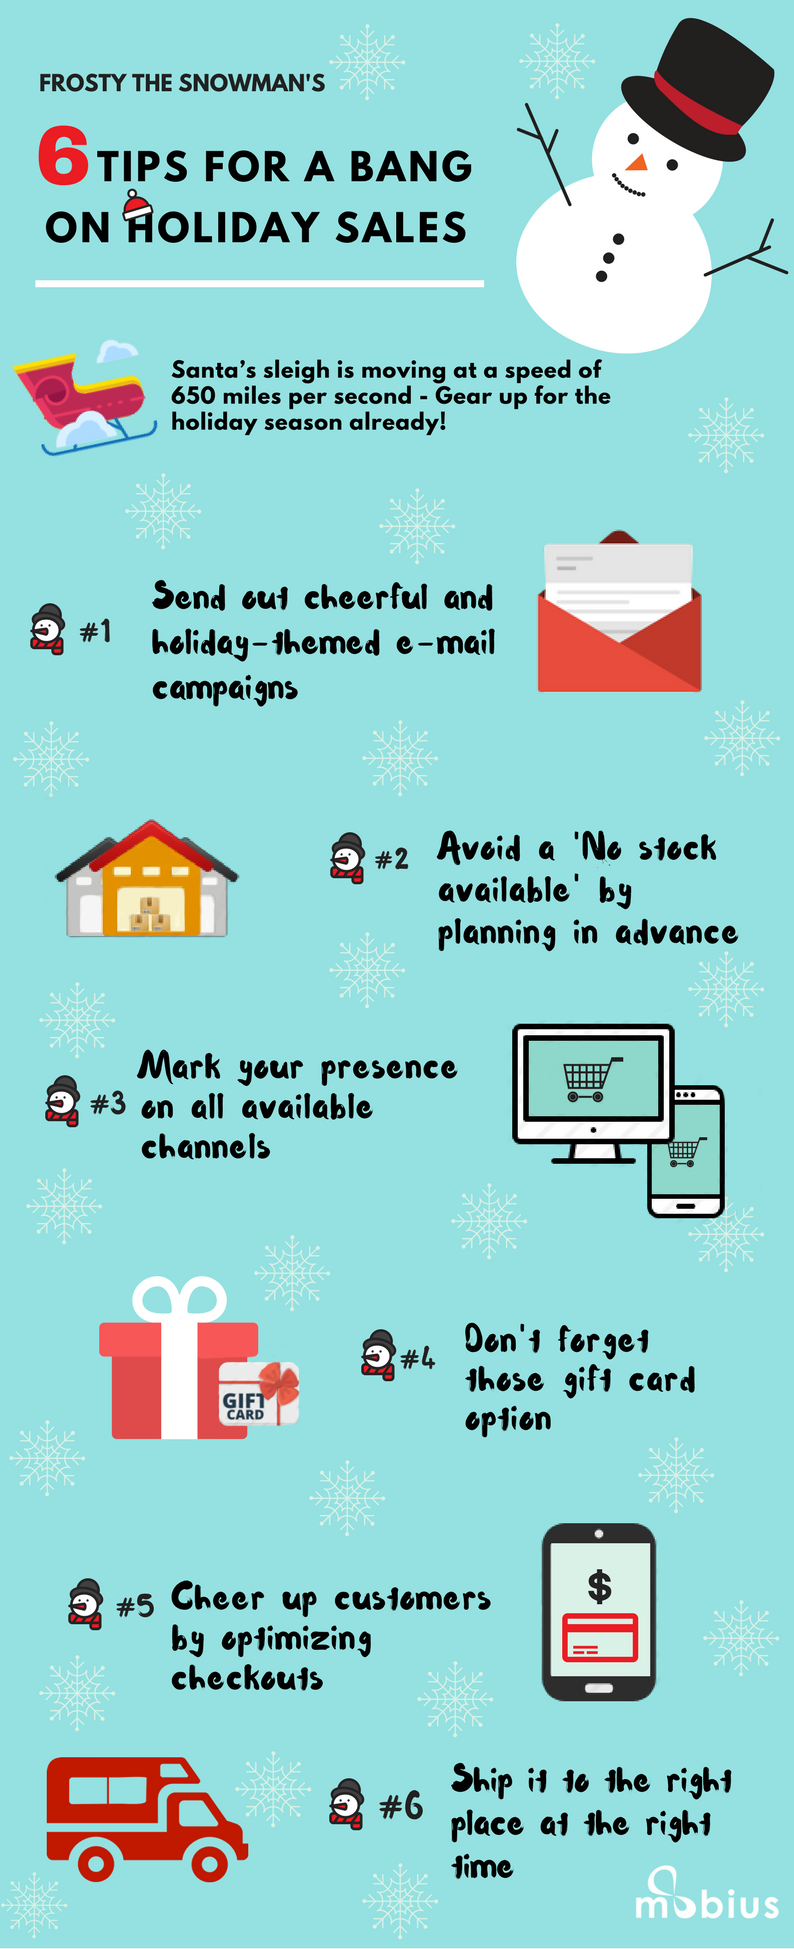 6-tips-for-a-bang-on-holiday-sales-infographic-mobius